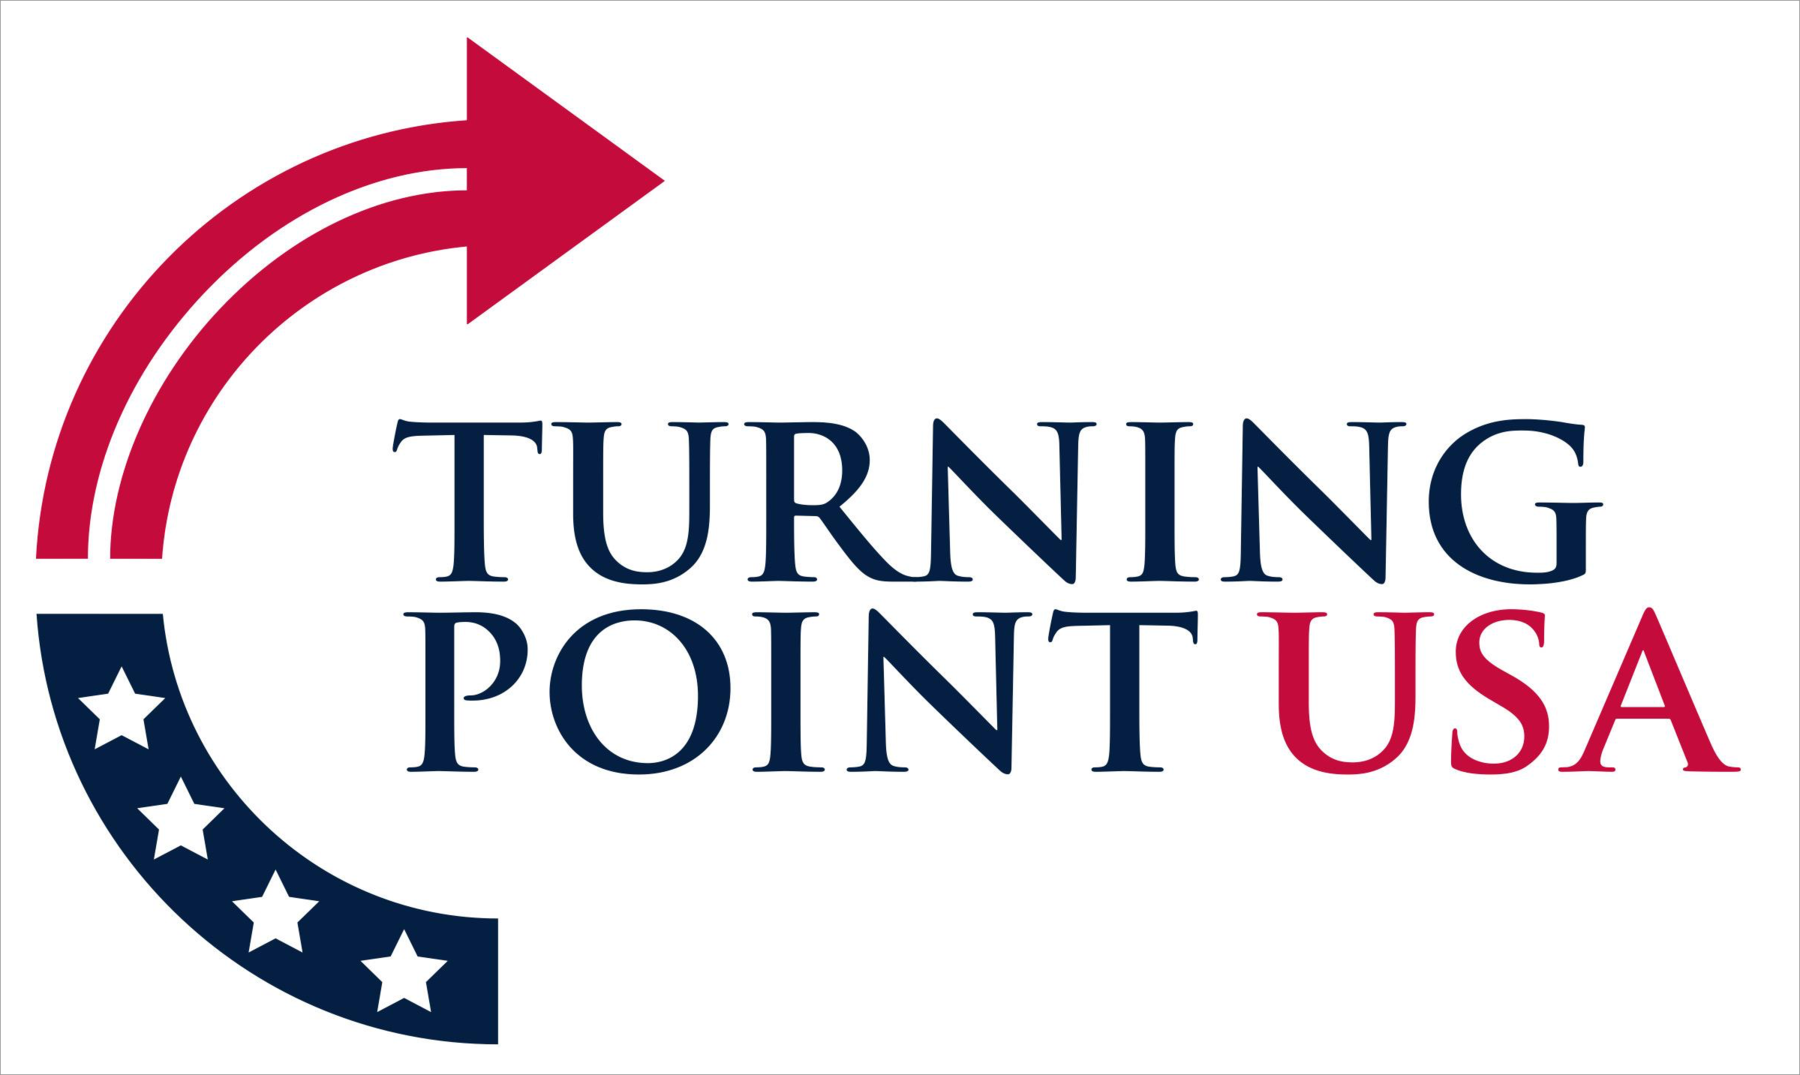 TURNING POINT USA: Professor Watchlist